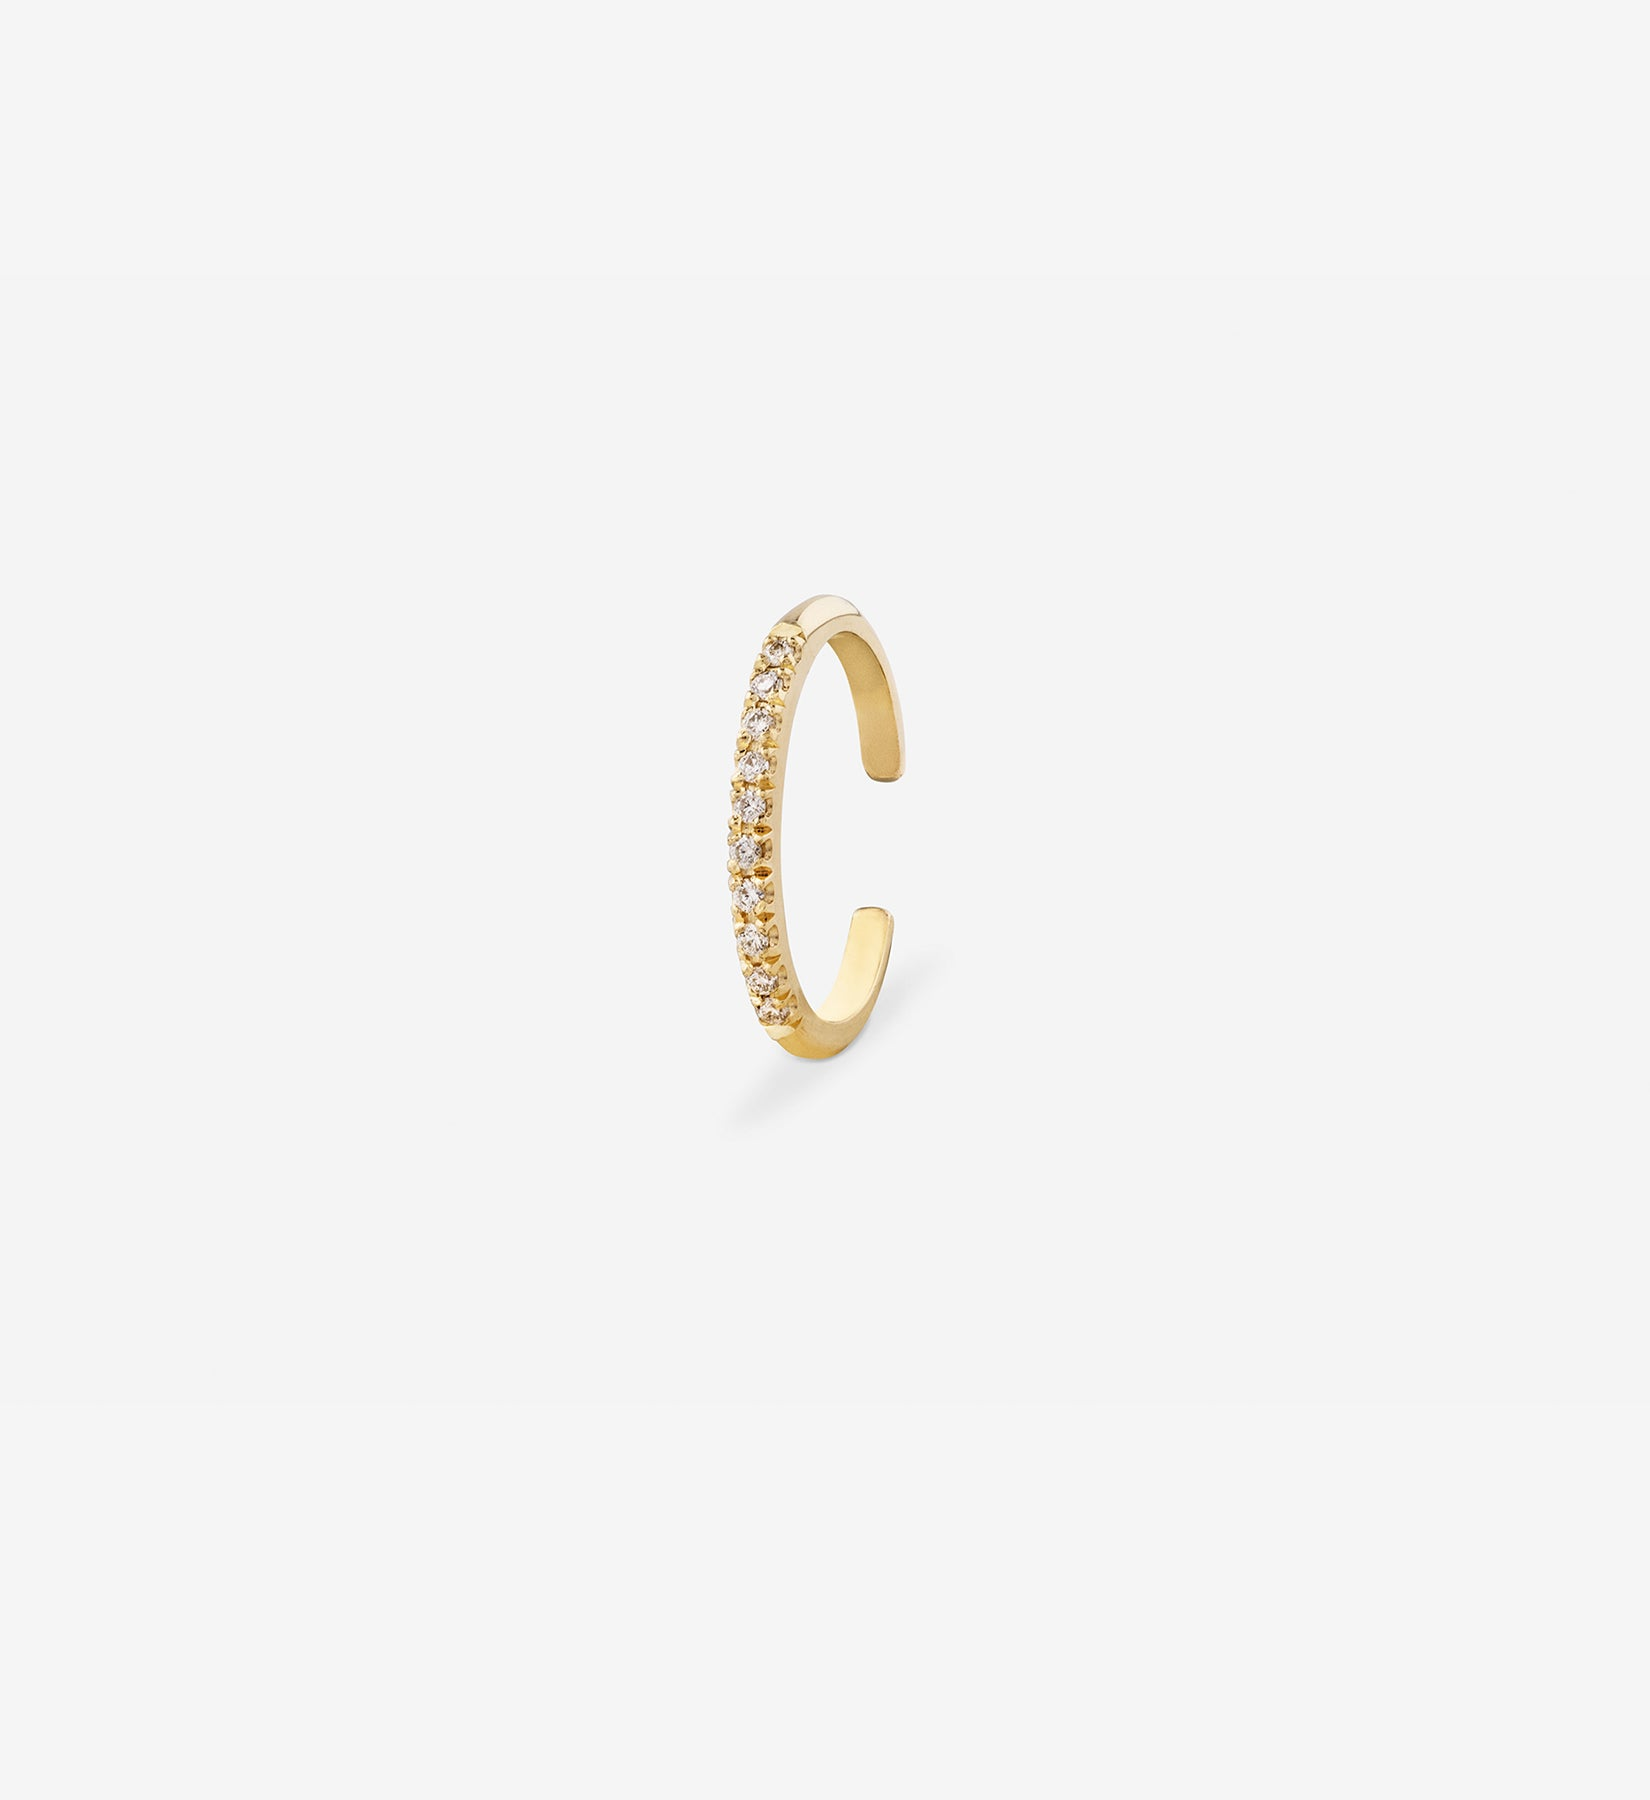 OUVERTURE, Fine jewelry, 14K gold, diamonds, golden ring, diamond ring, golden earring, diamond earring. Handcrafted jewelry. Designed in Berlin. Honestly priced. Demifine. Earparty. Stacking rings. Diamond Huggie, Huggie earring, golden huggie earring diamond line earring, diamond line earcuff